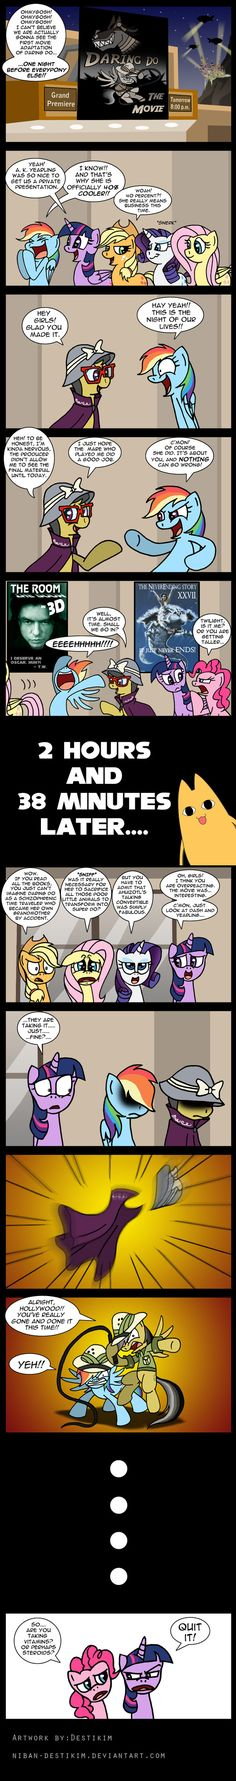 Daring Do - The Movie by Niban-Destikim on deviantART My Little Pony Comic, My Little Pony Pictures, Mlp Comics, Funny Comics, Funny Images, Funny Pictures, Mlp Memes, Best Cartoons Ever, Cute Ponies